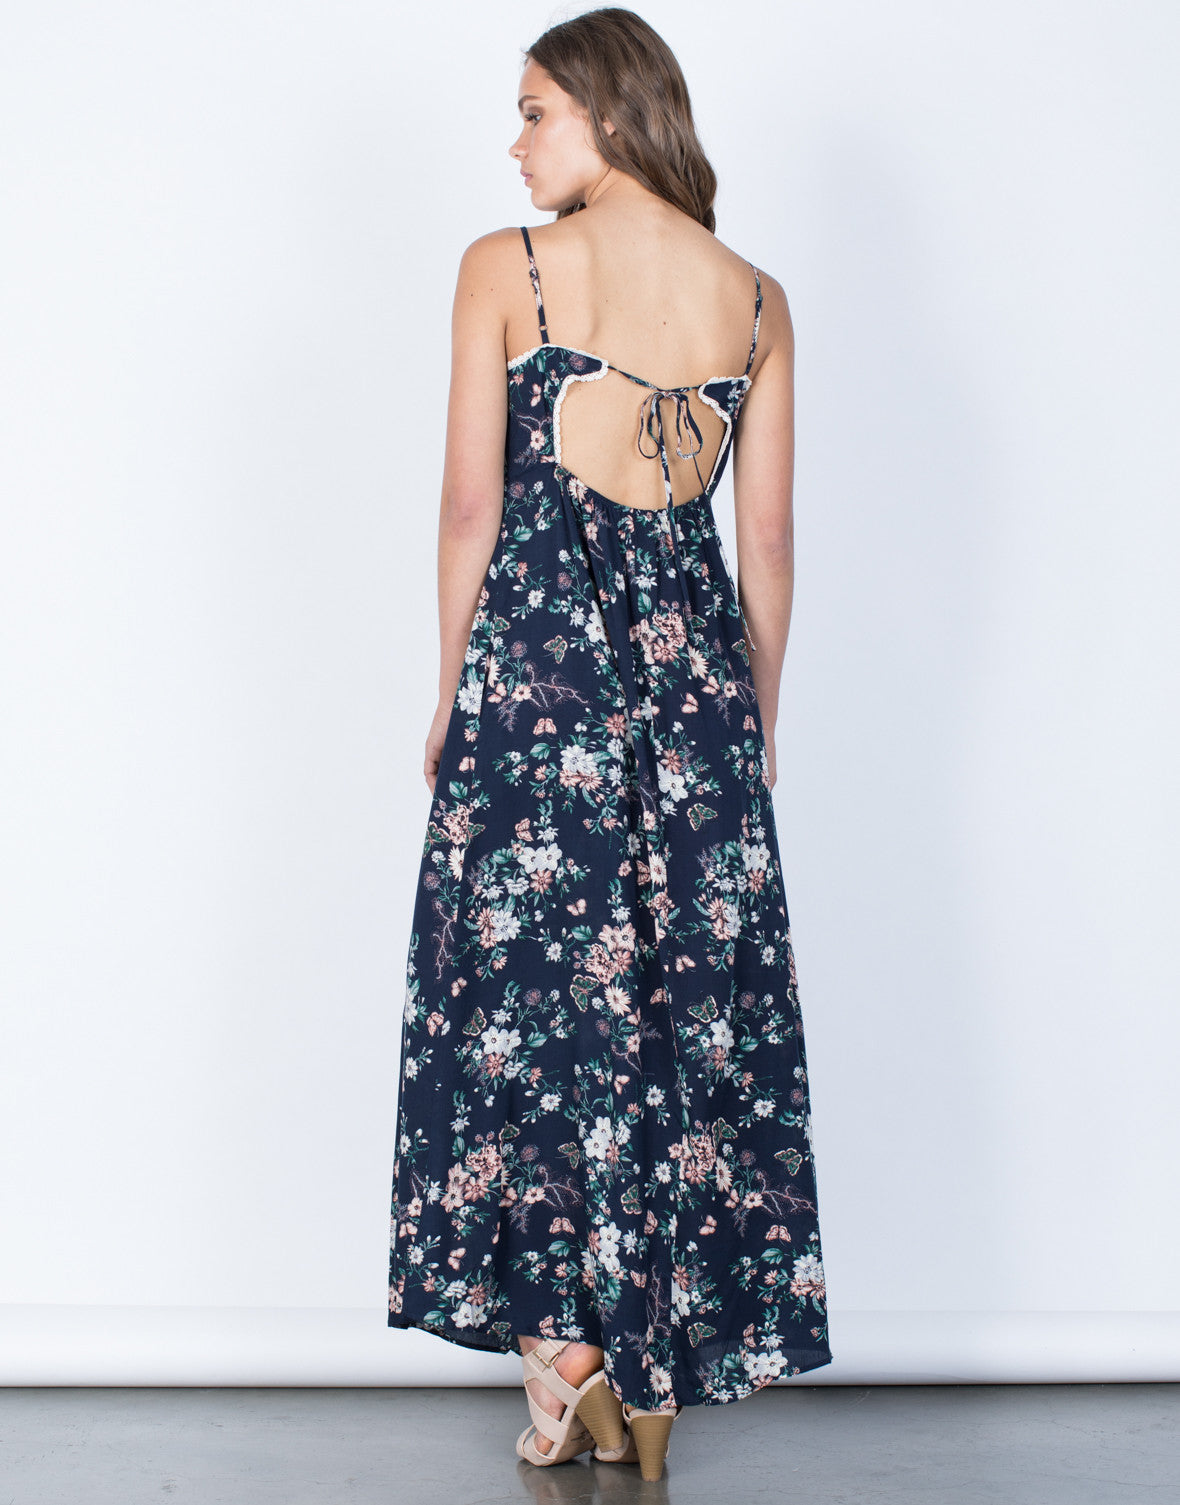 Back View of Garden Floral Maxi Dress